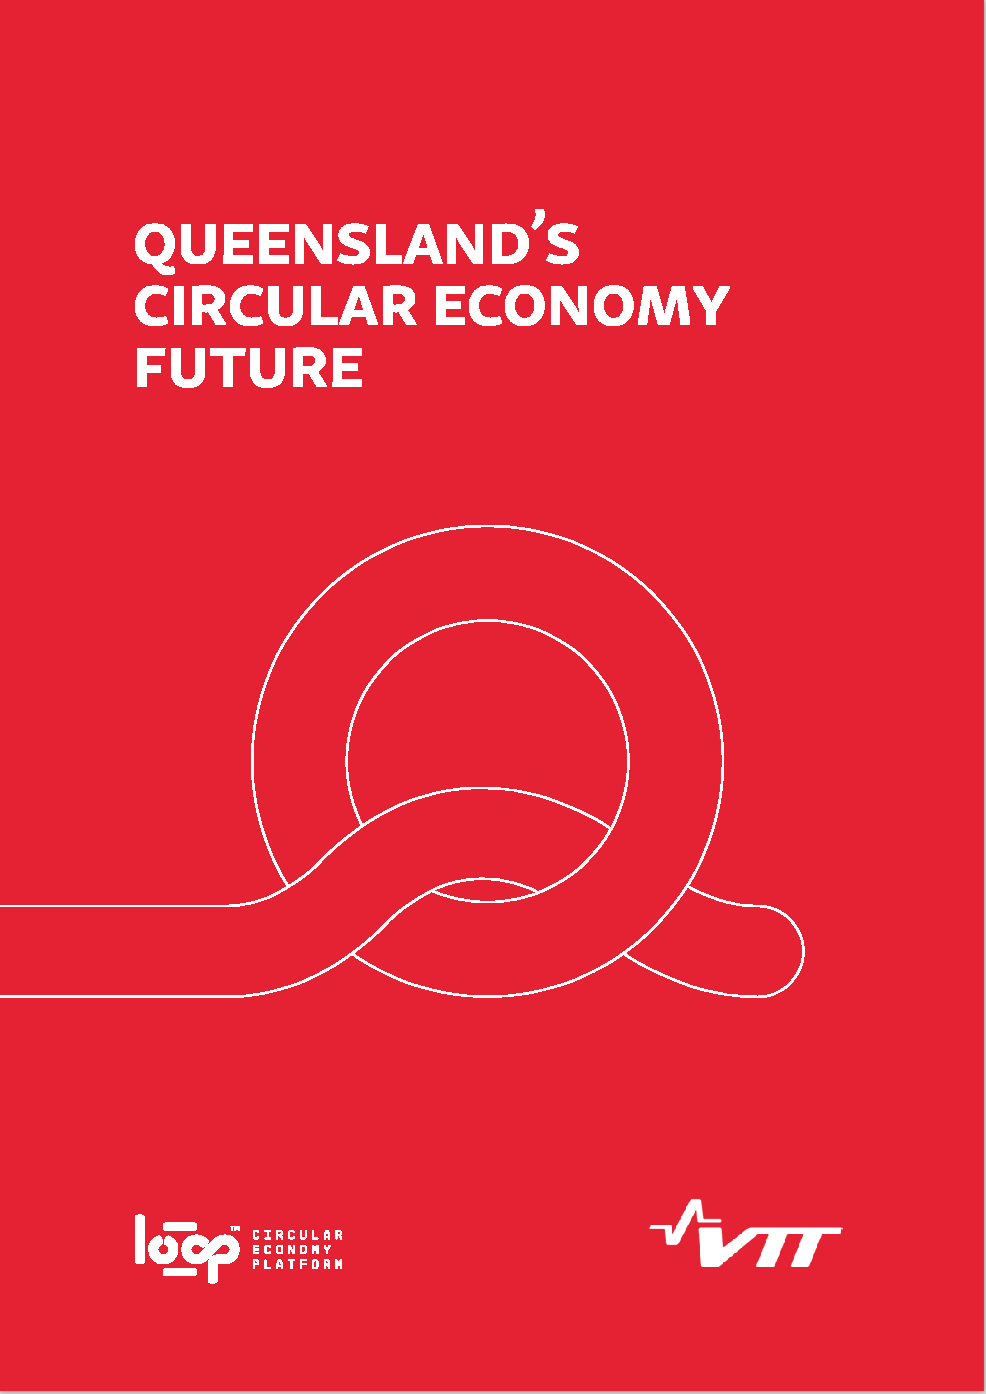 QueenslandsCircularEconomyFuture1.png